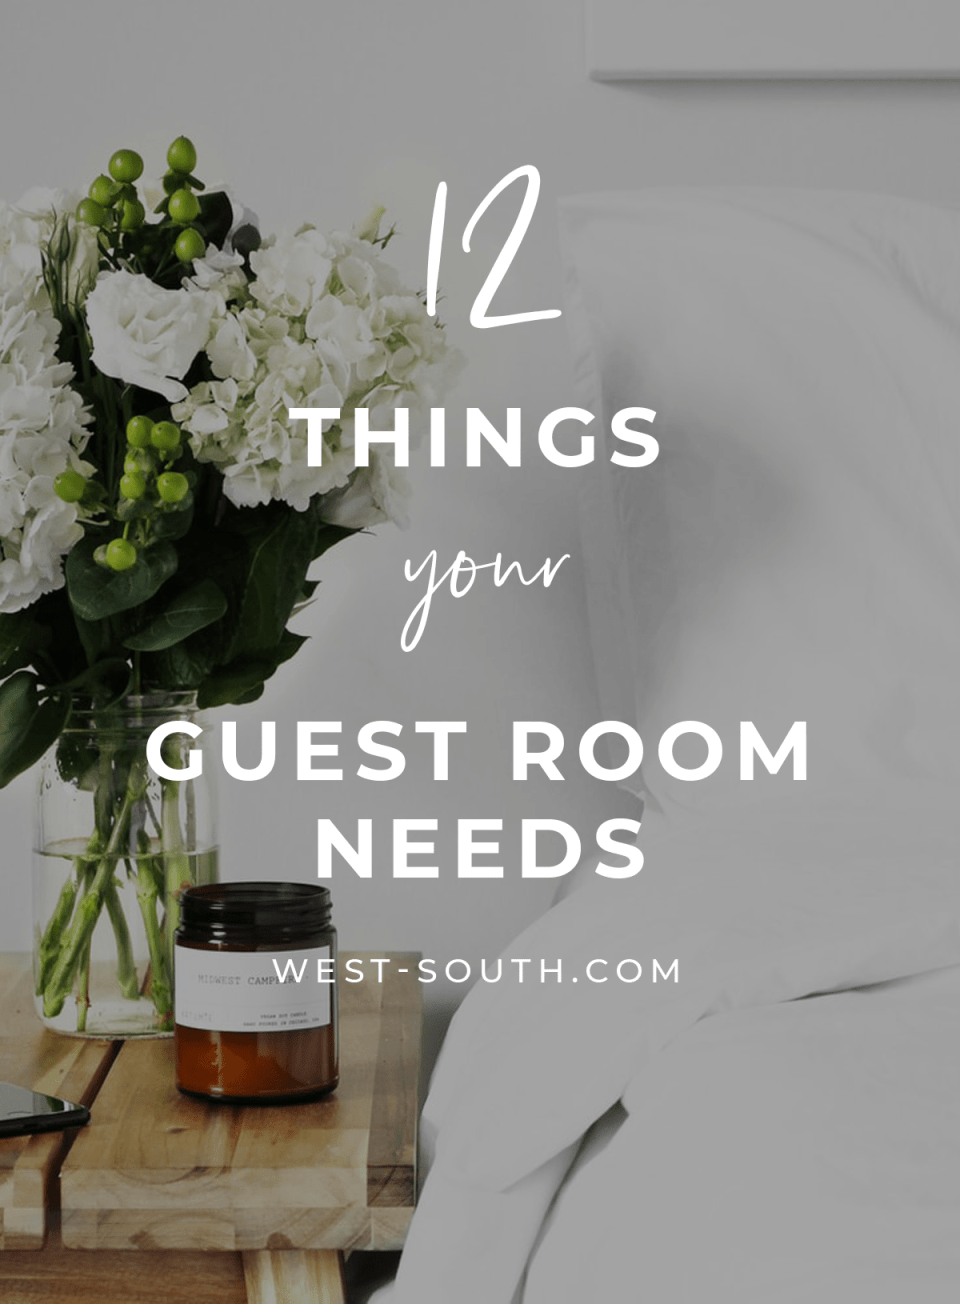 image for pinterest 12 things your guest room needs